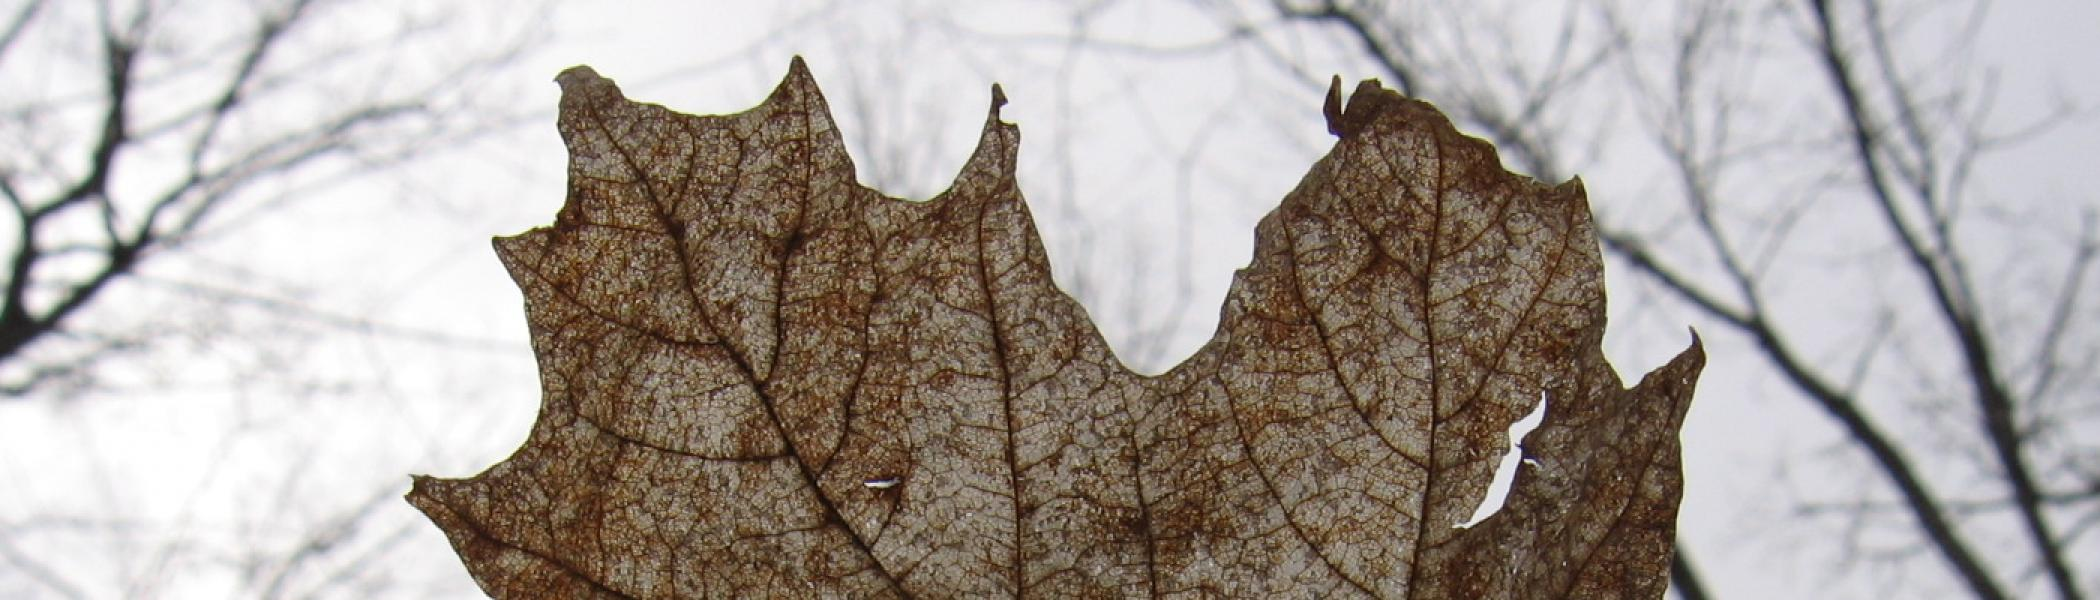 close up view of maple leaf with sky and trees in back ground